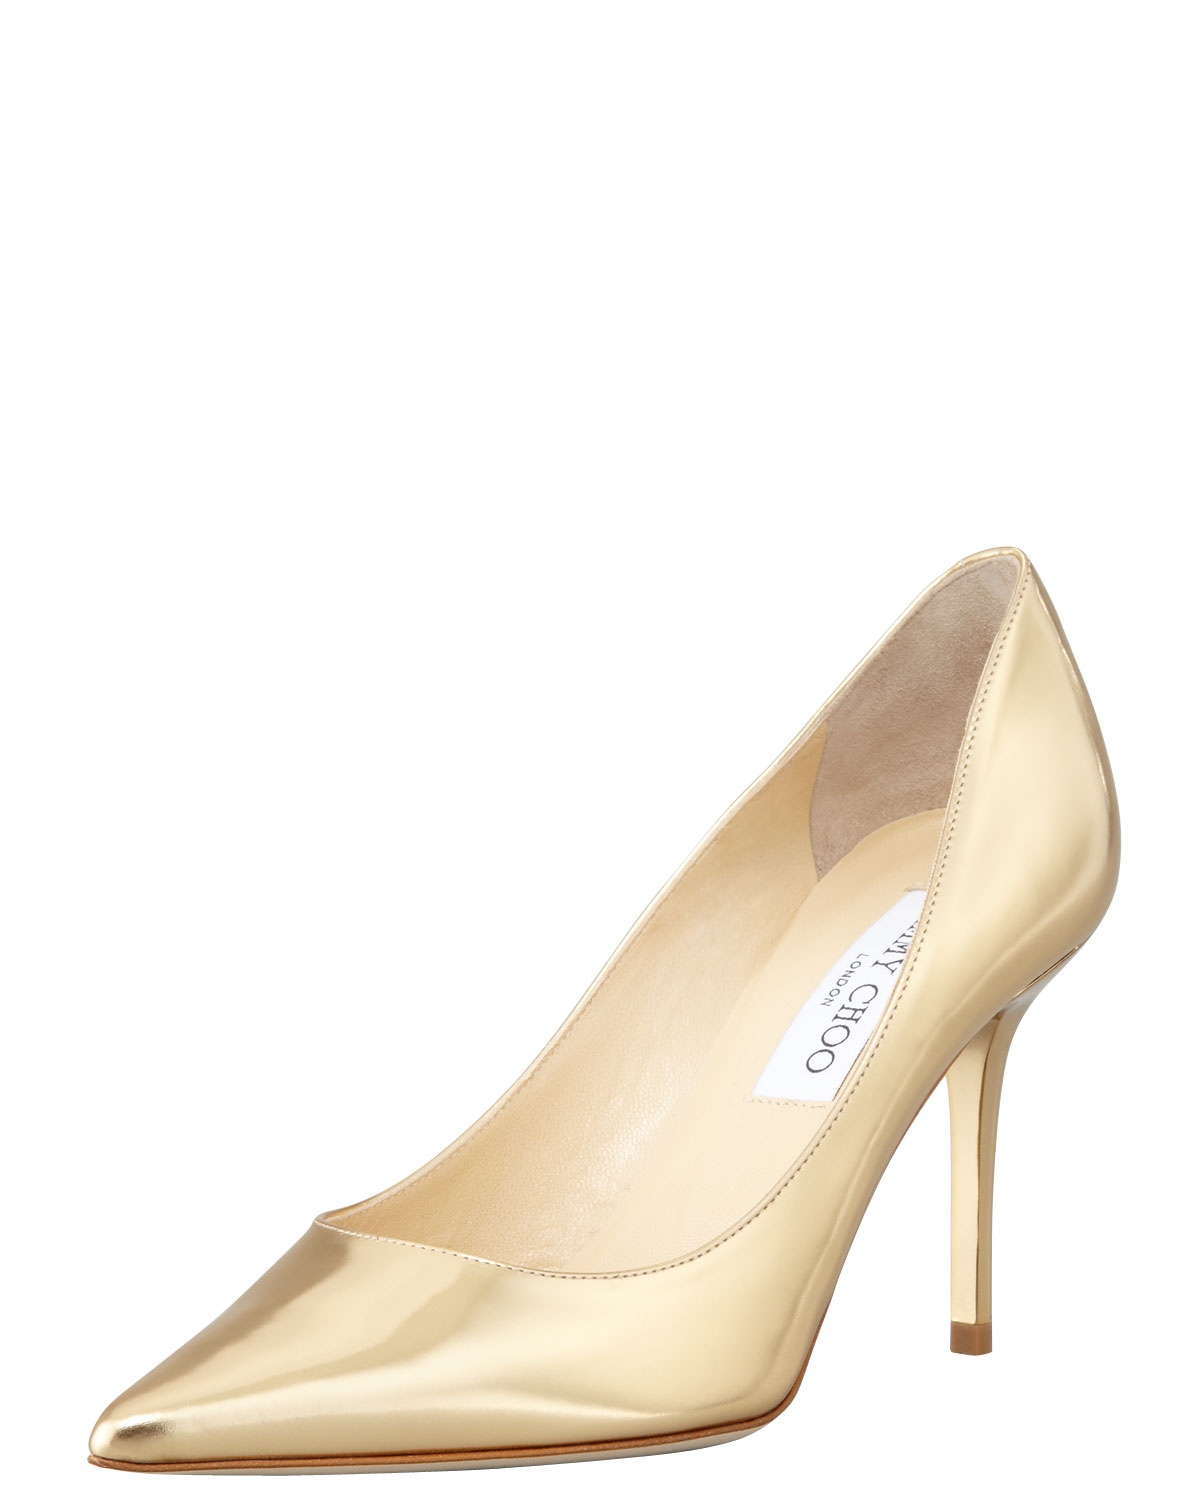 b9aa46e20 Gallery. Previously sold at: Bergdorf Goodman · Women's Jimmy Choo Agnes  Pumps